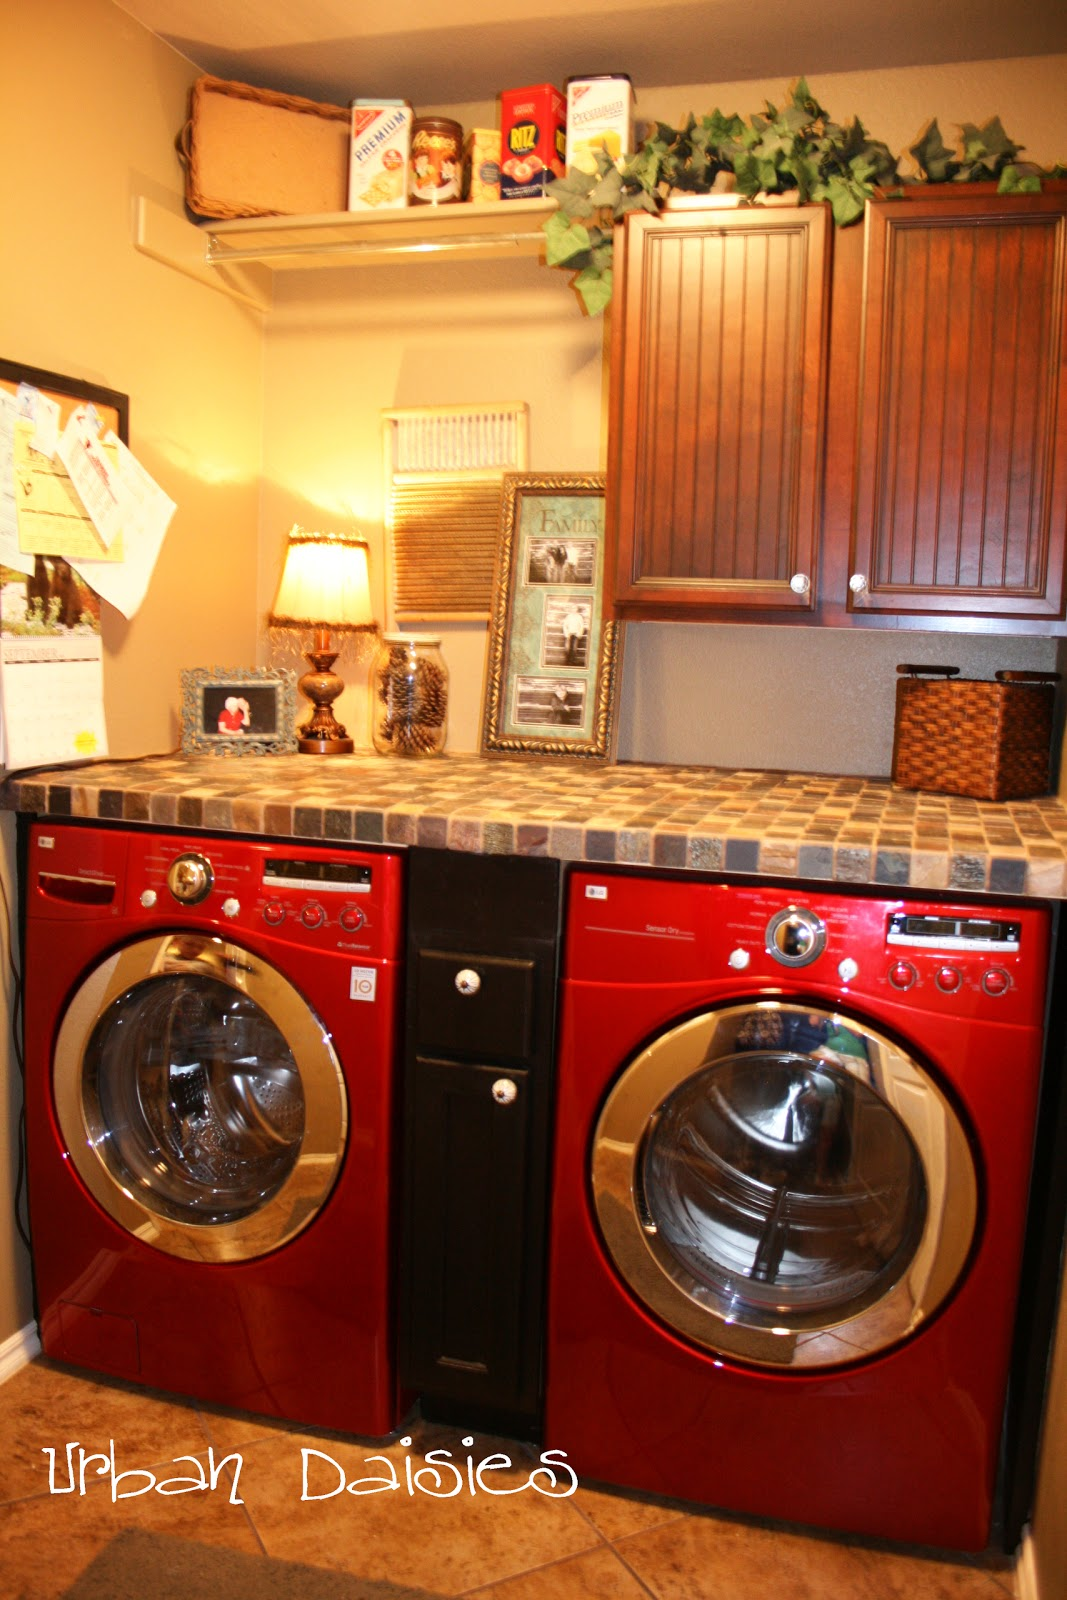 Laundry Room Counter Over Washer and Dryer